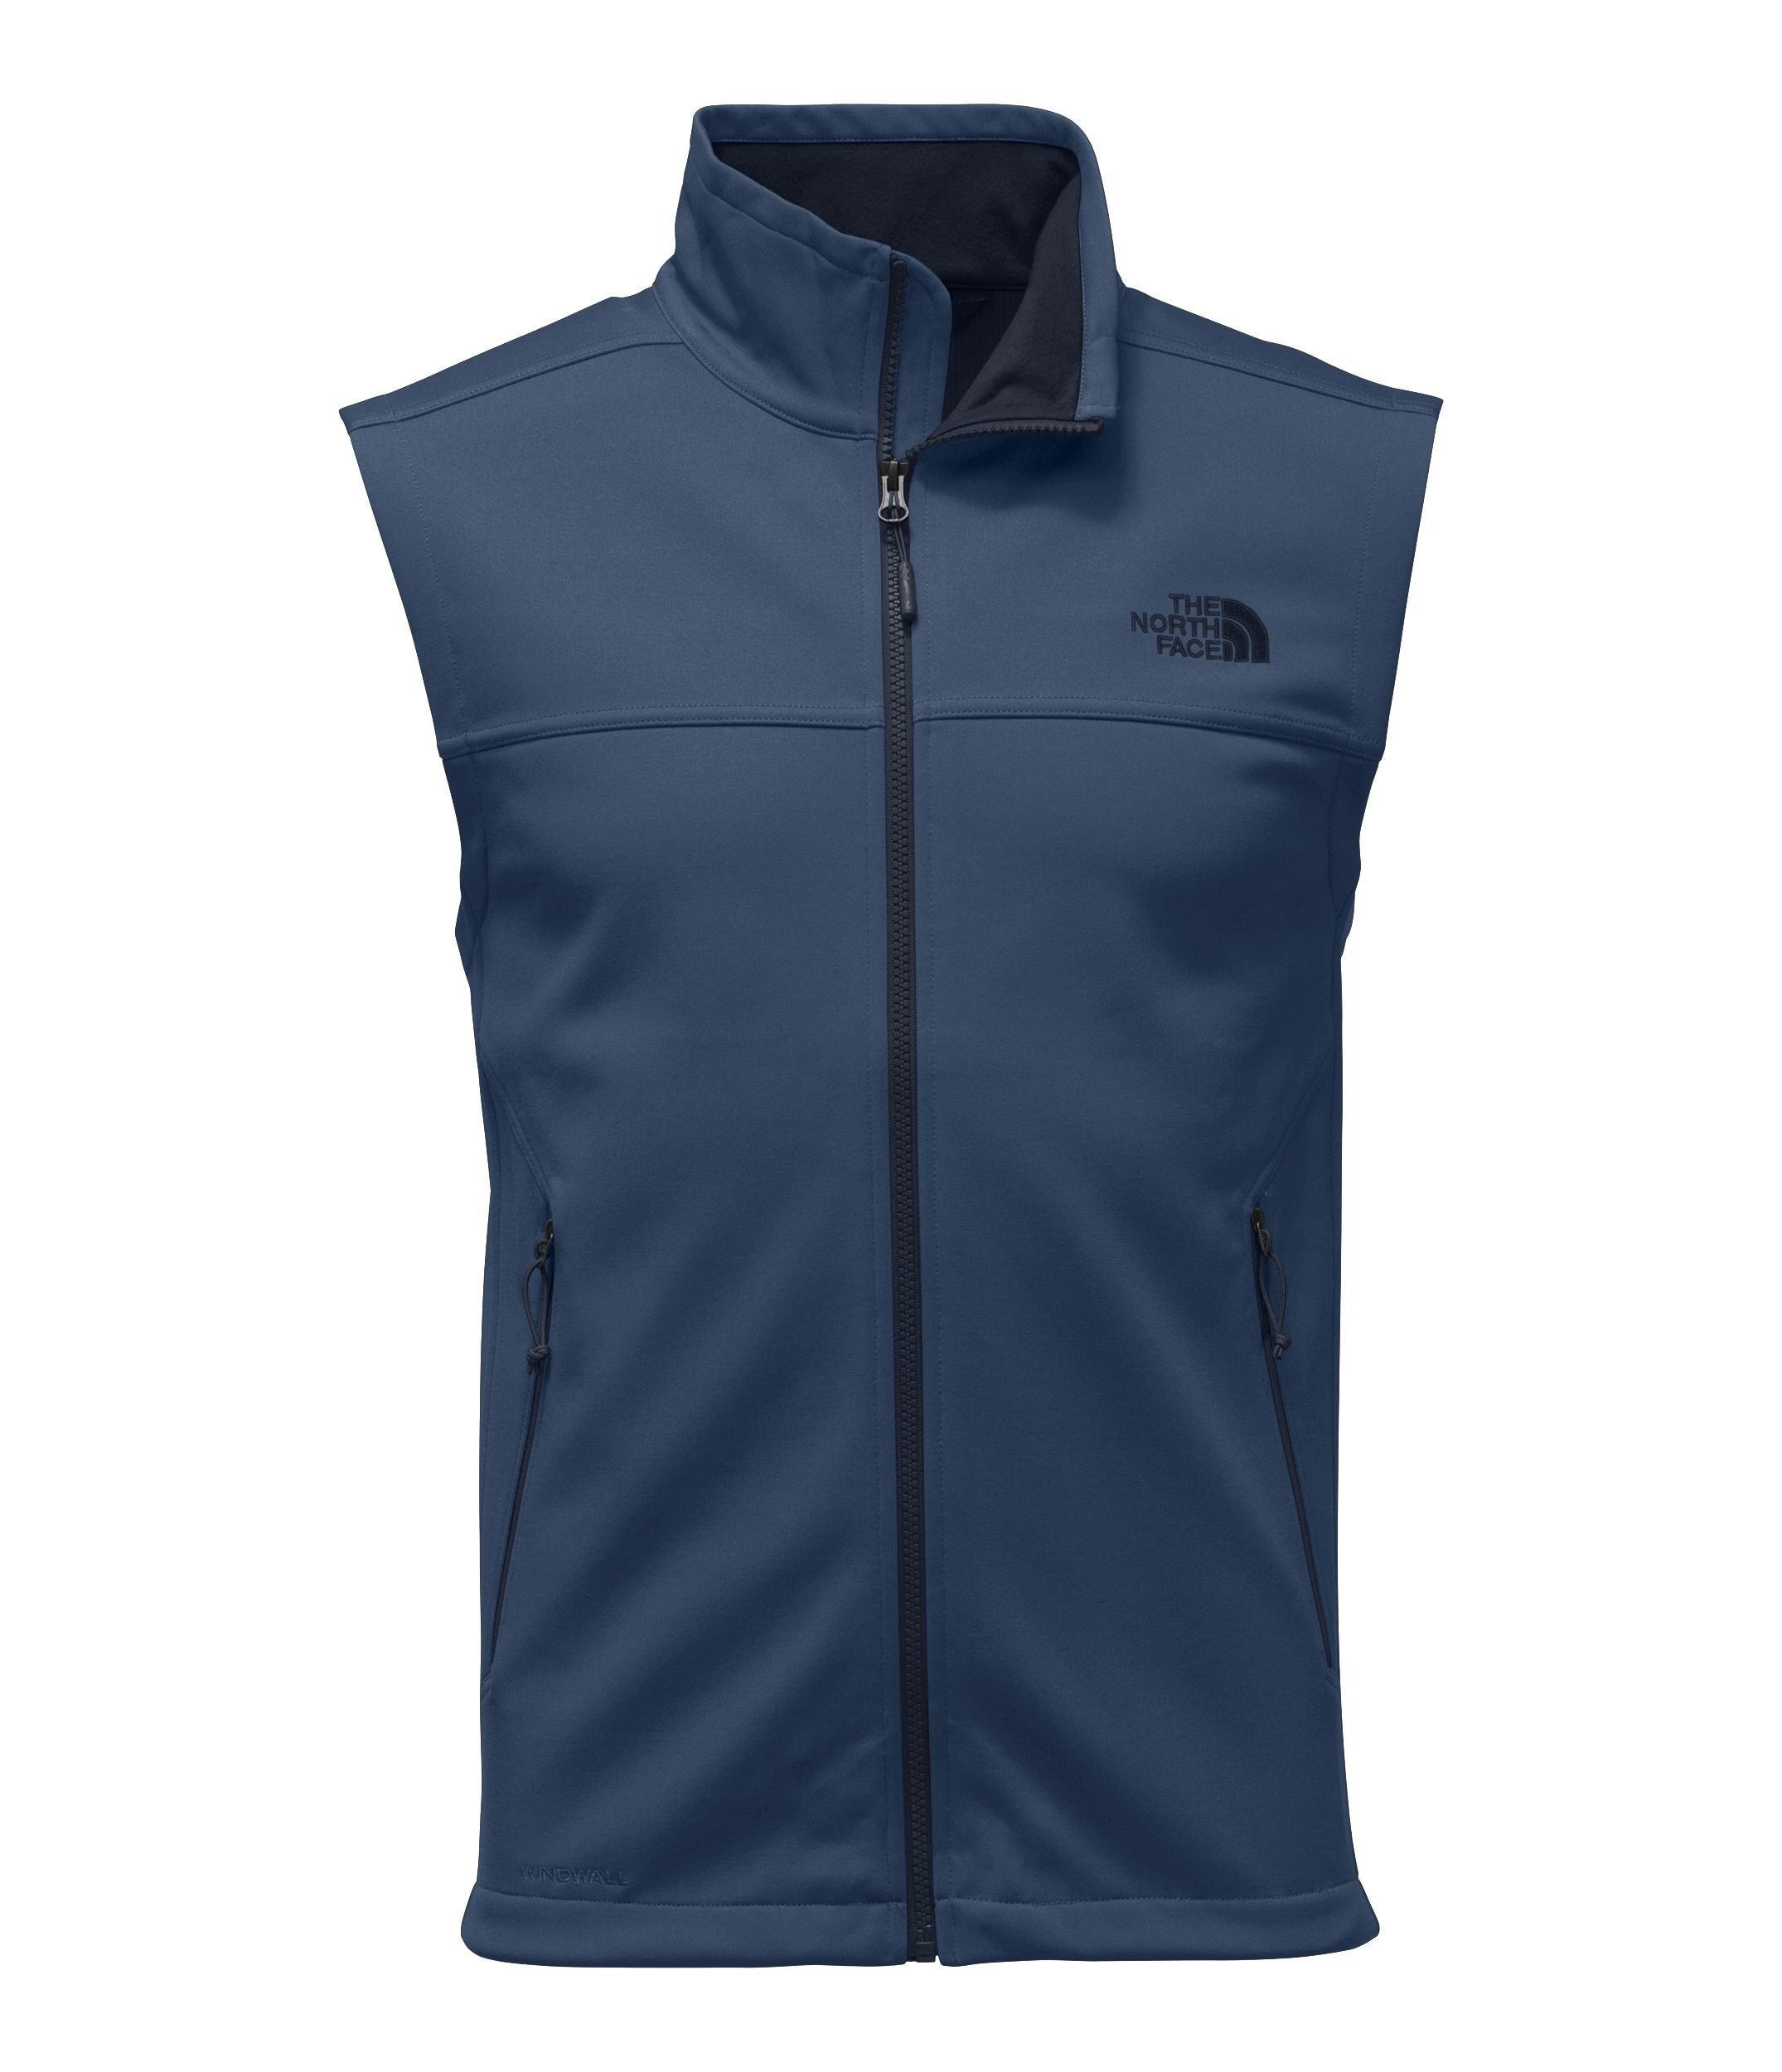 The North Face Men's Apex Canyonwall Vest - Shady Blue & Shady Blue - S by The North Face